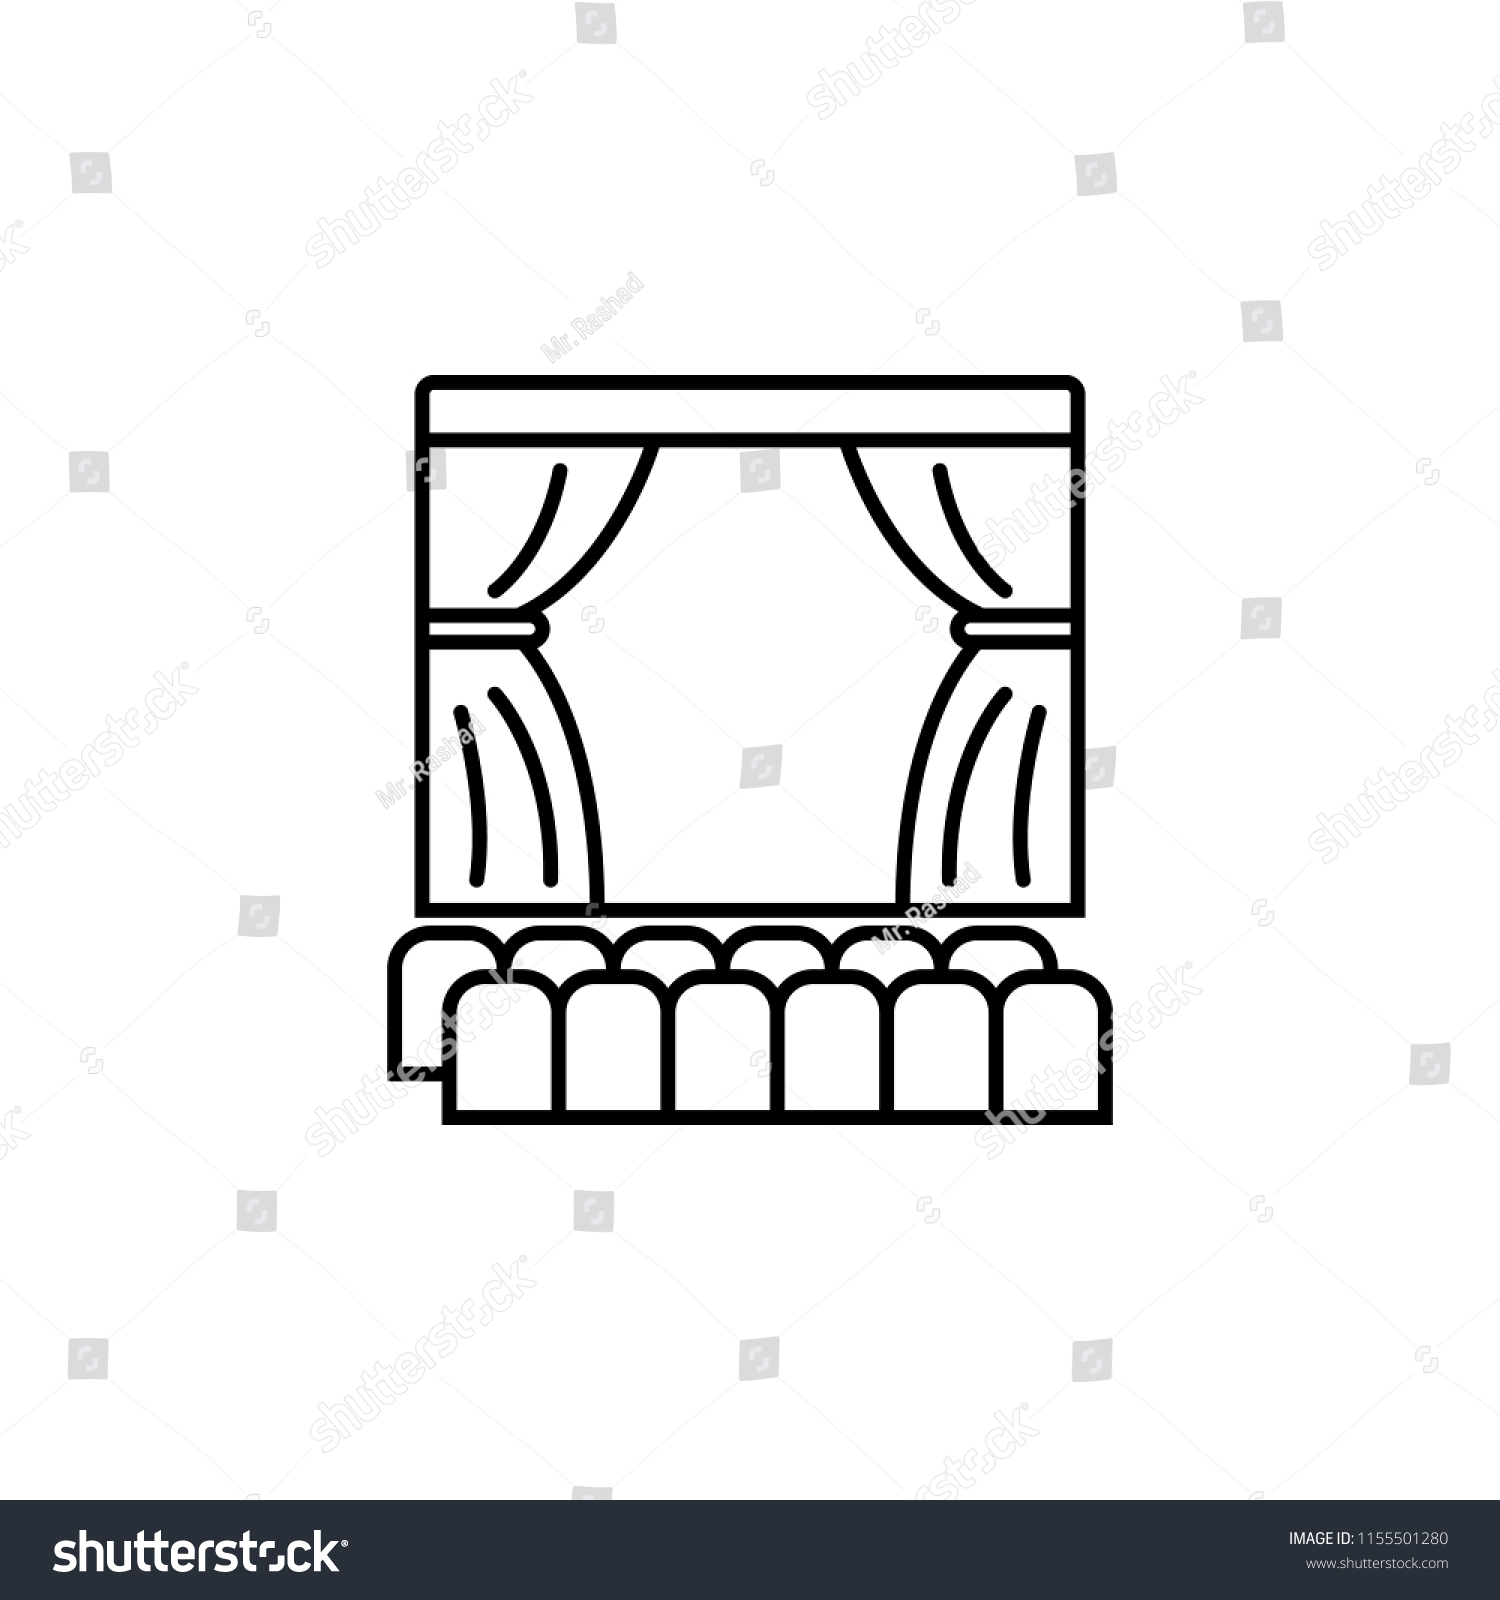 Theater Scene Icon Element Lighting Stock Vector Royalty Free Diagram Of For Mobile Concept And Web Apps Thin